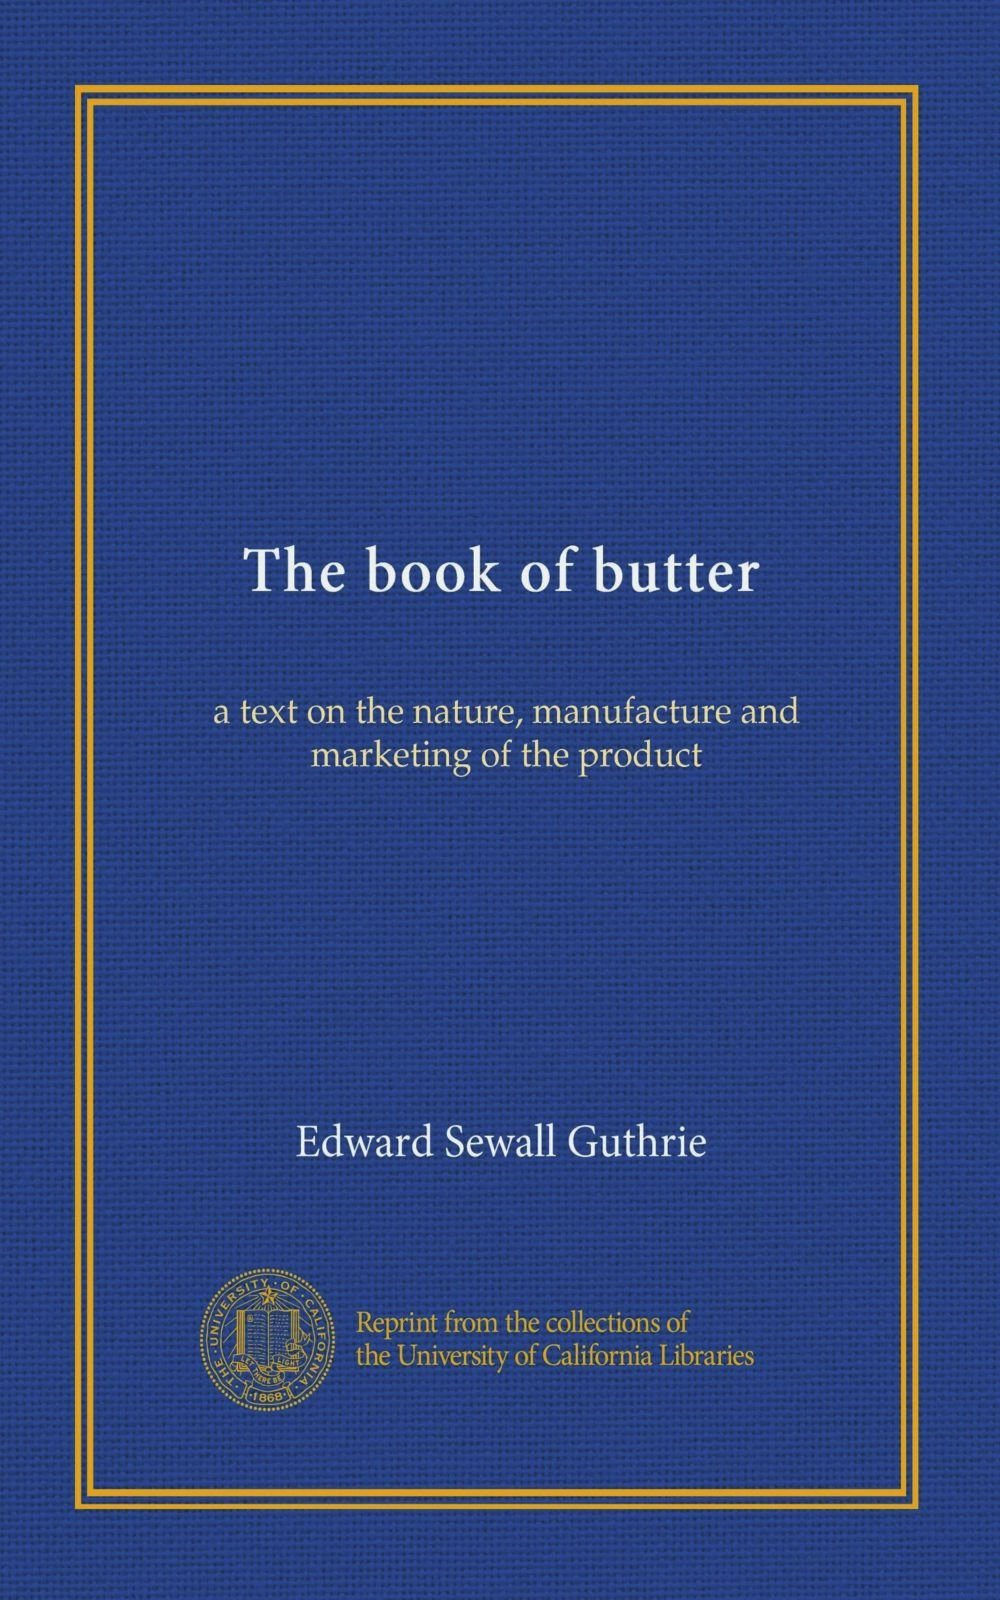 The book of butter: a text on the nature, manufacture and marketing of the product PDF